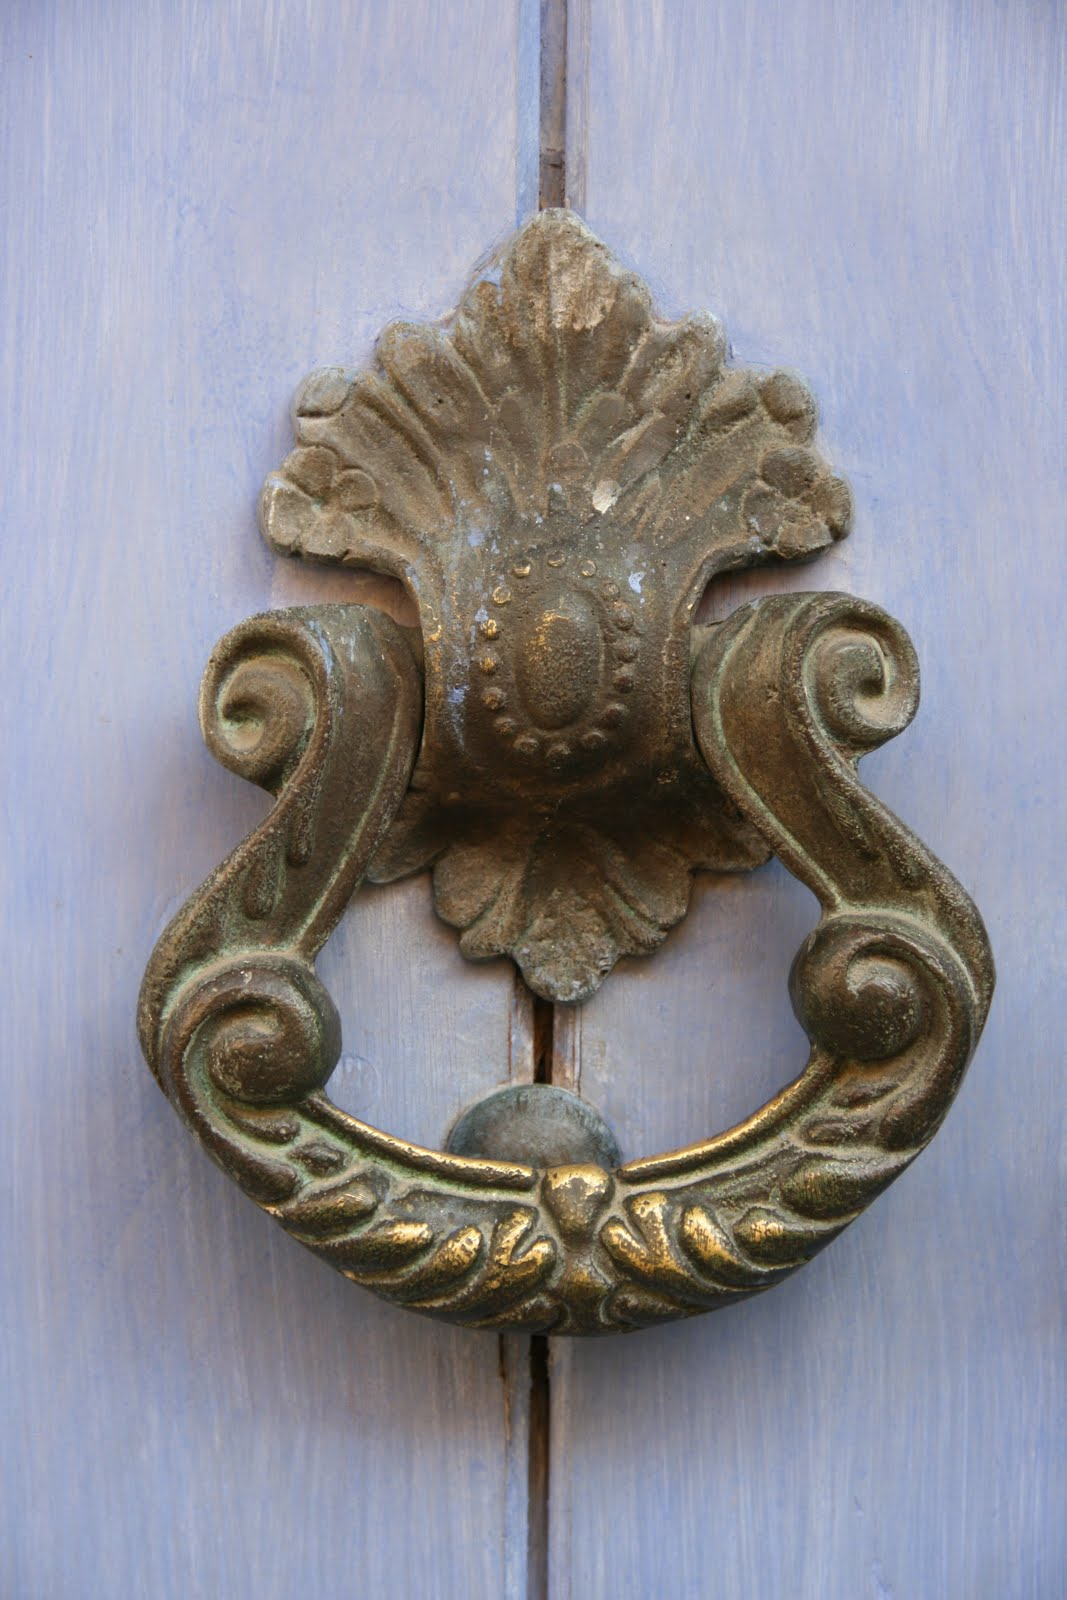 I Assure You I Got The Most Looks From People Wondering Why I Was Spending  So Much Time Taking Multiple Photos Of Every Door Knocker In Town!